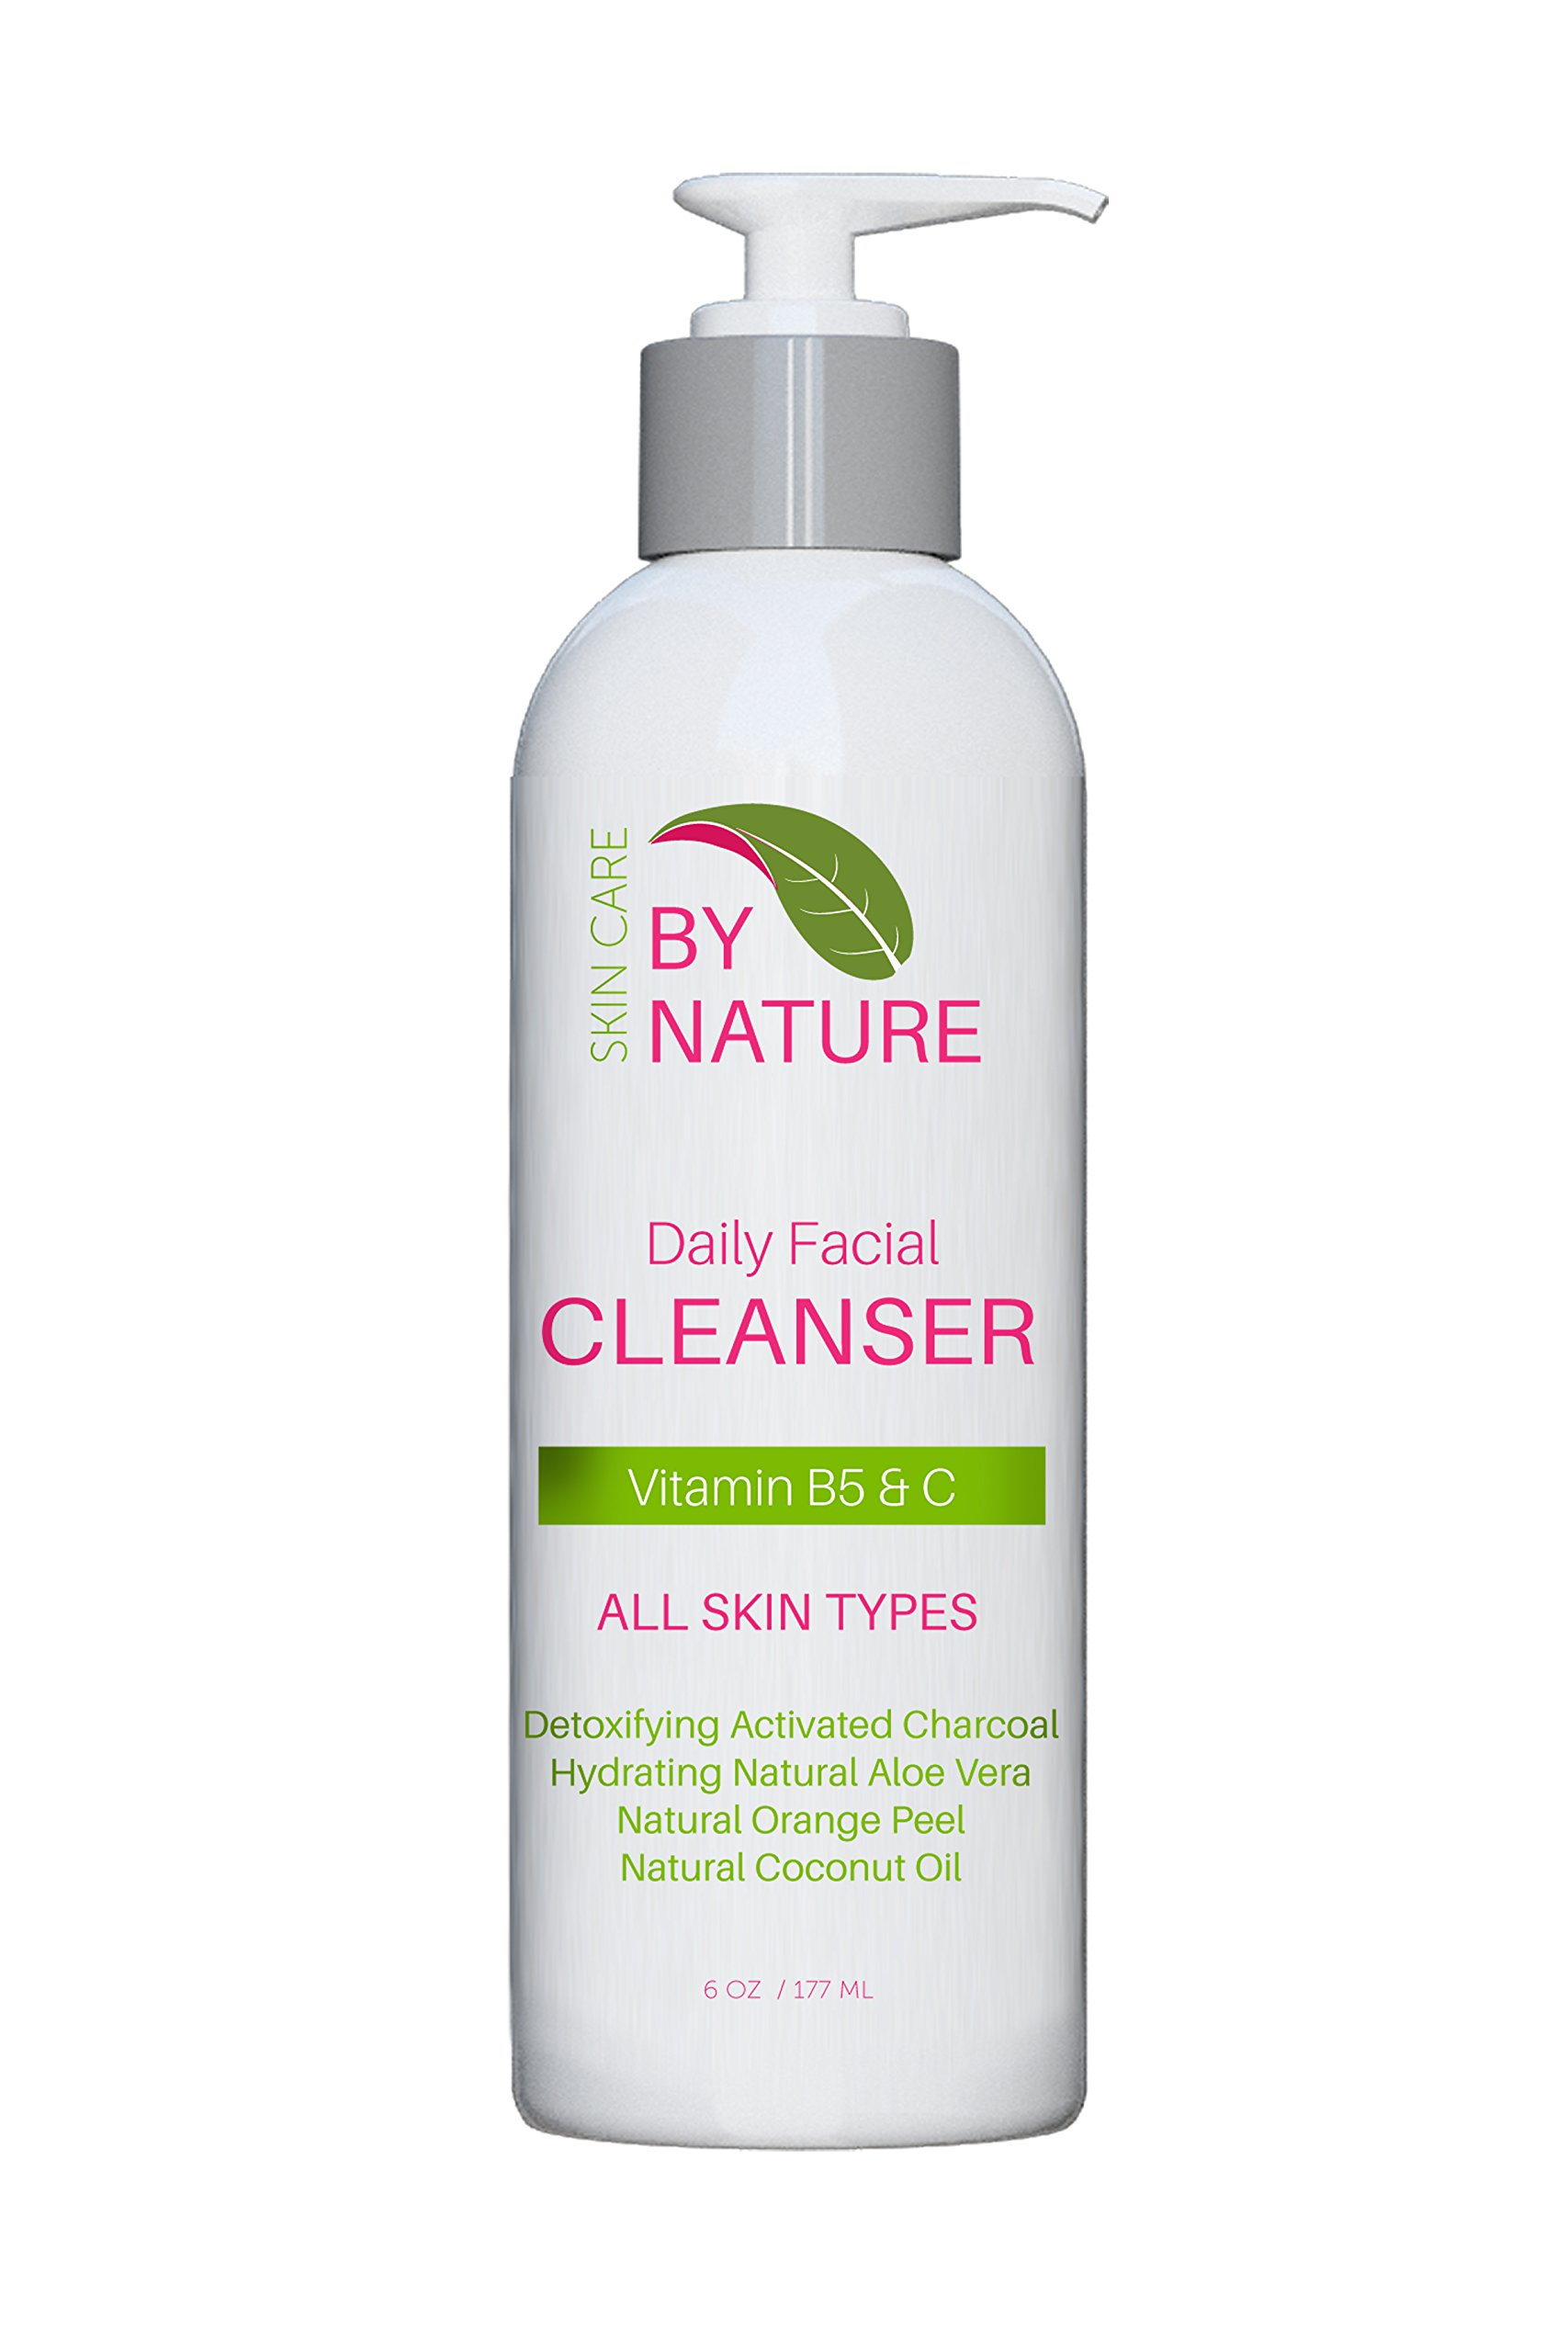 By Nature Organic Facial Cleanser - Activated Charcoal Natural Face Wash - Anti-Aging Face Wash For All Skin Types with Vitamin C, Green Tea, Aloe Vera and Vitamin B5 - 6OZ